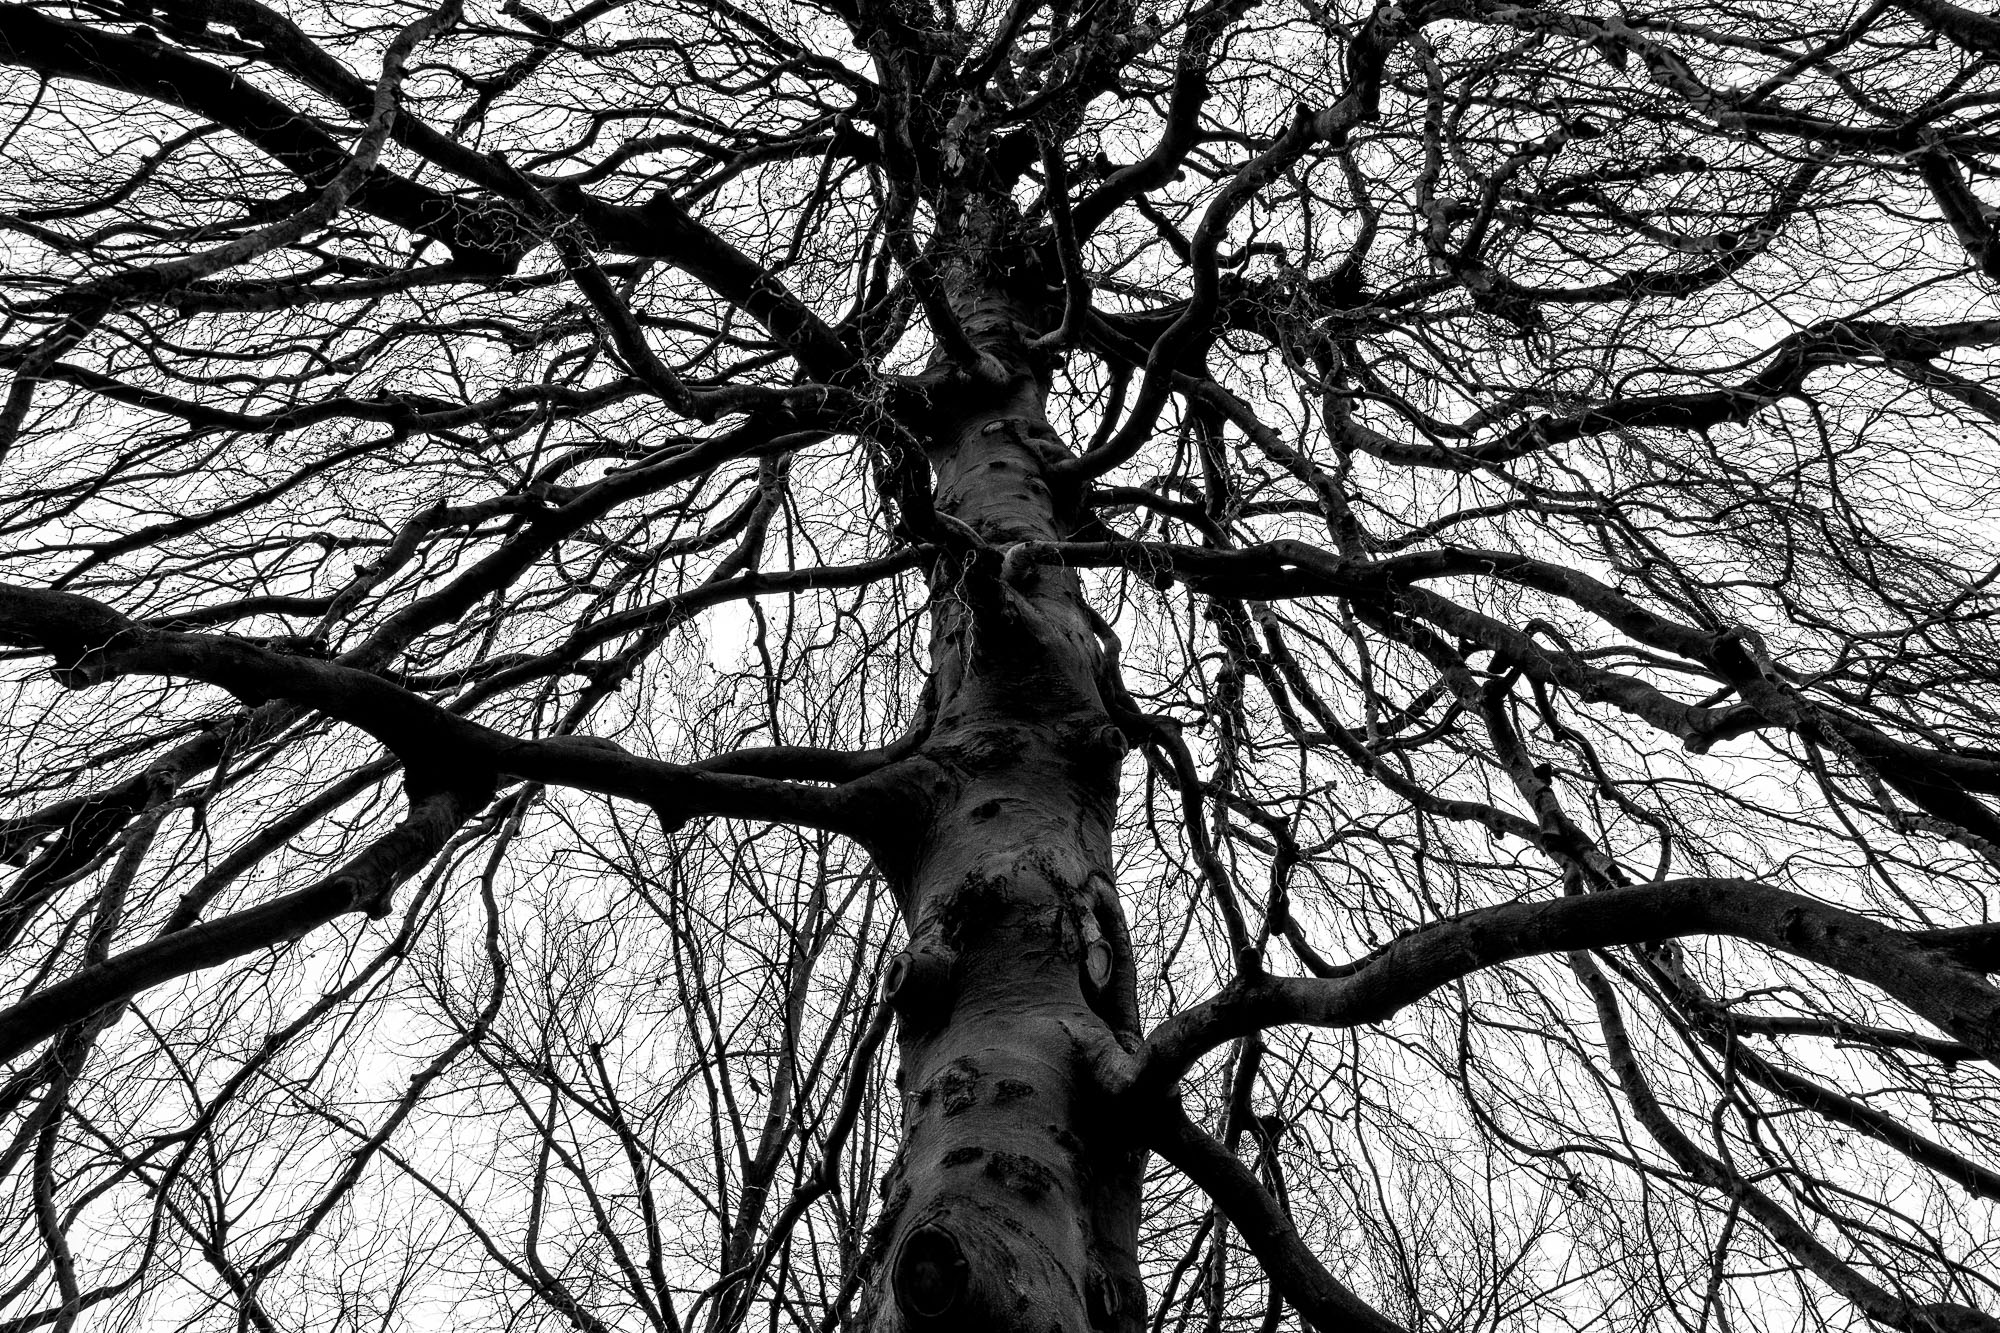 Almost silhouetted tree, shot upwards, with lots of branches.